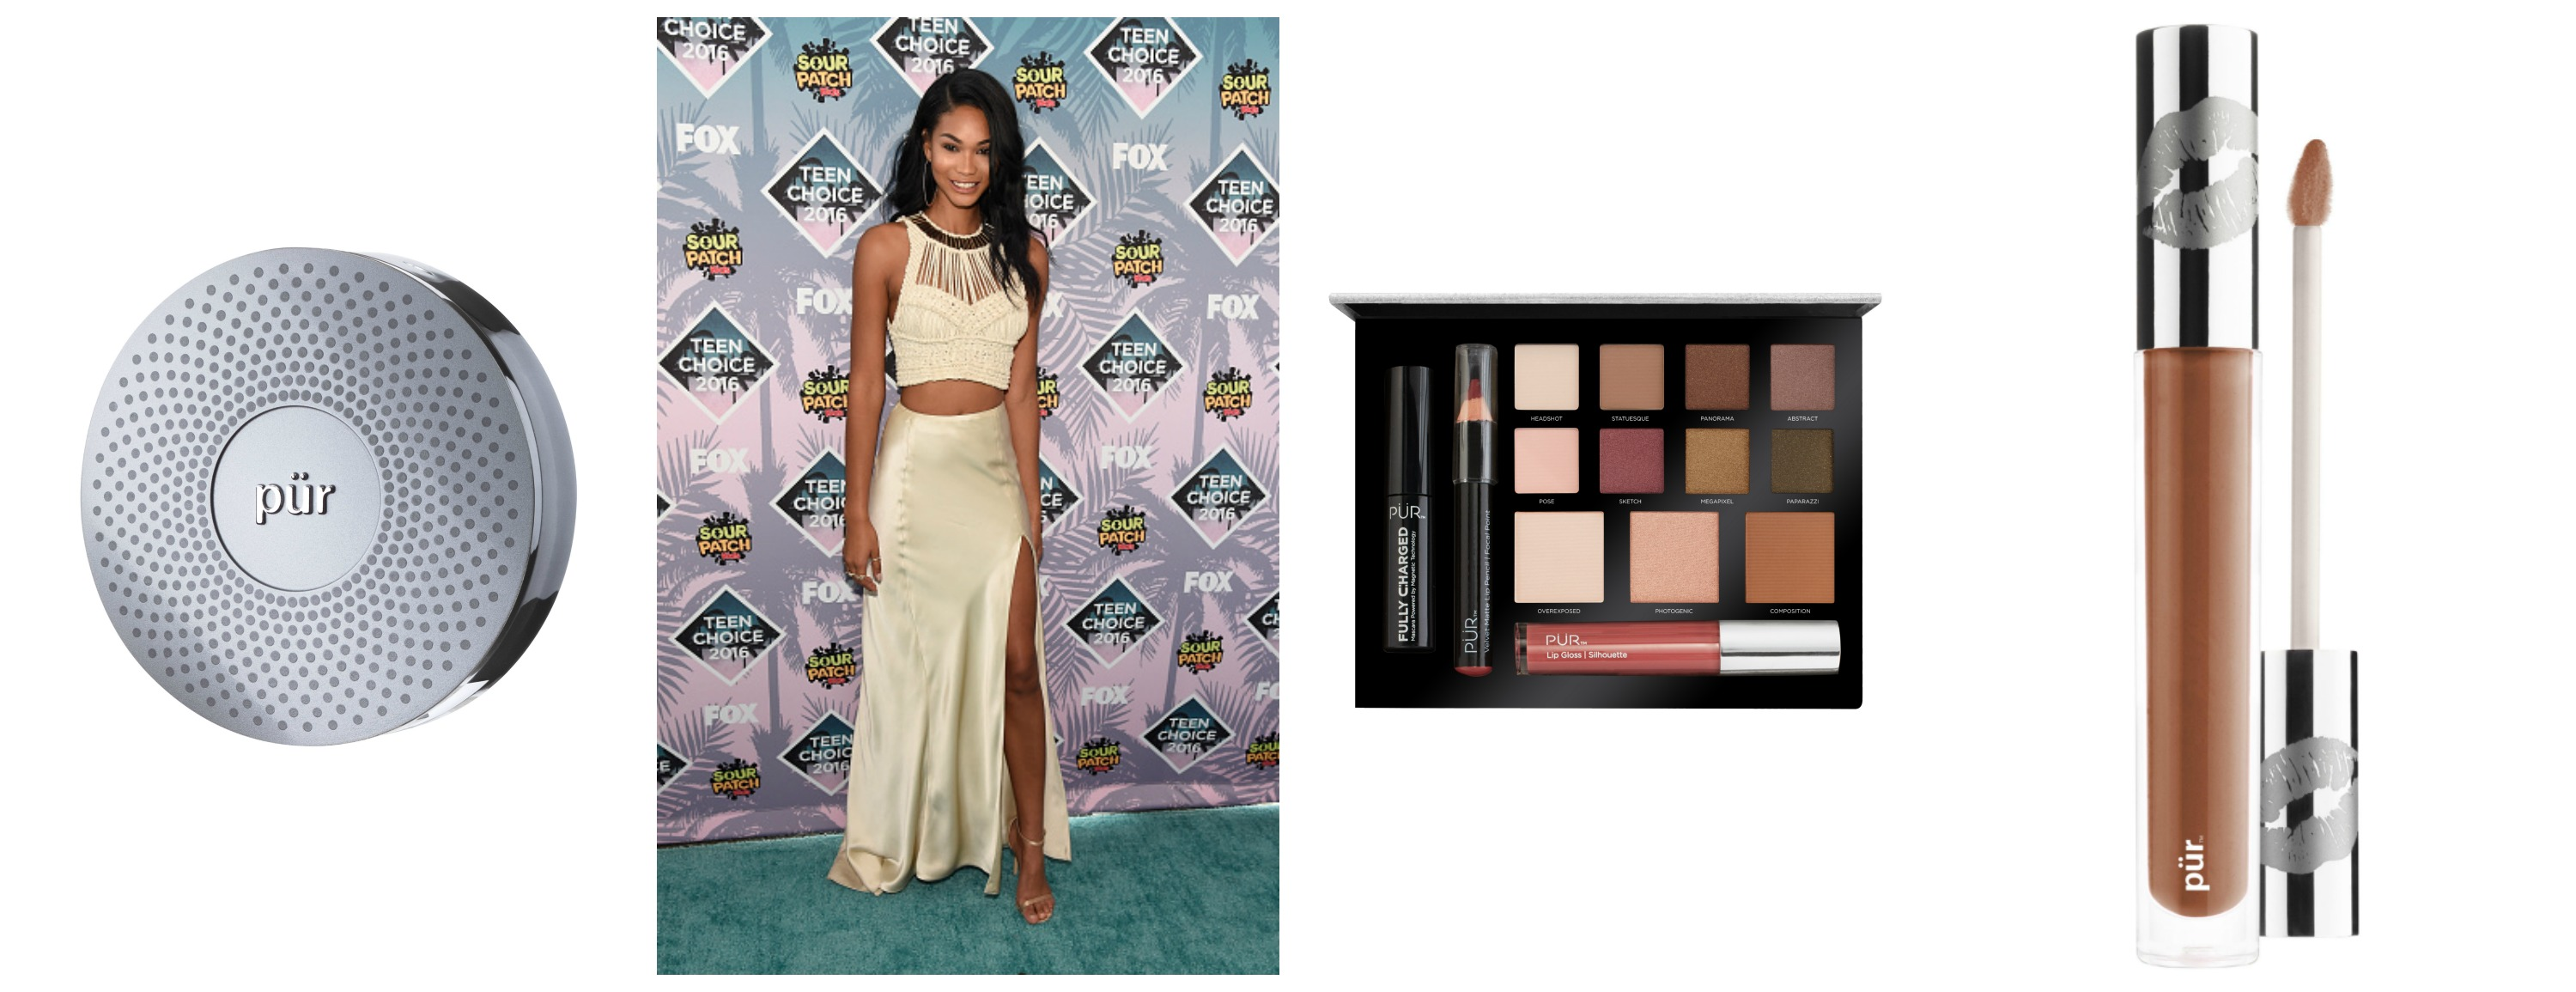 GET HER GLAM: CHANEL IMAN AT THE TEEN CHOICE AWARDS